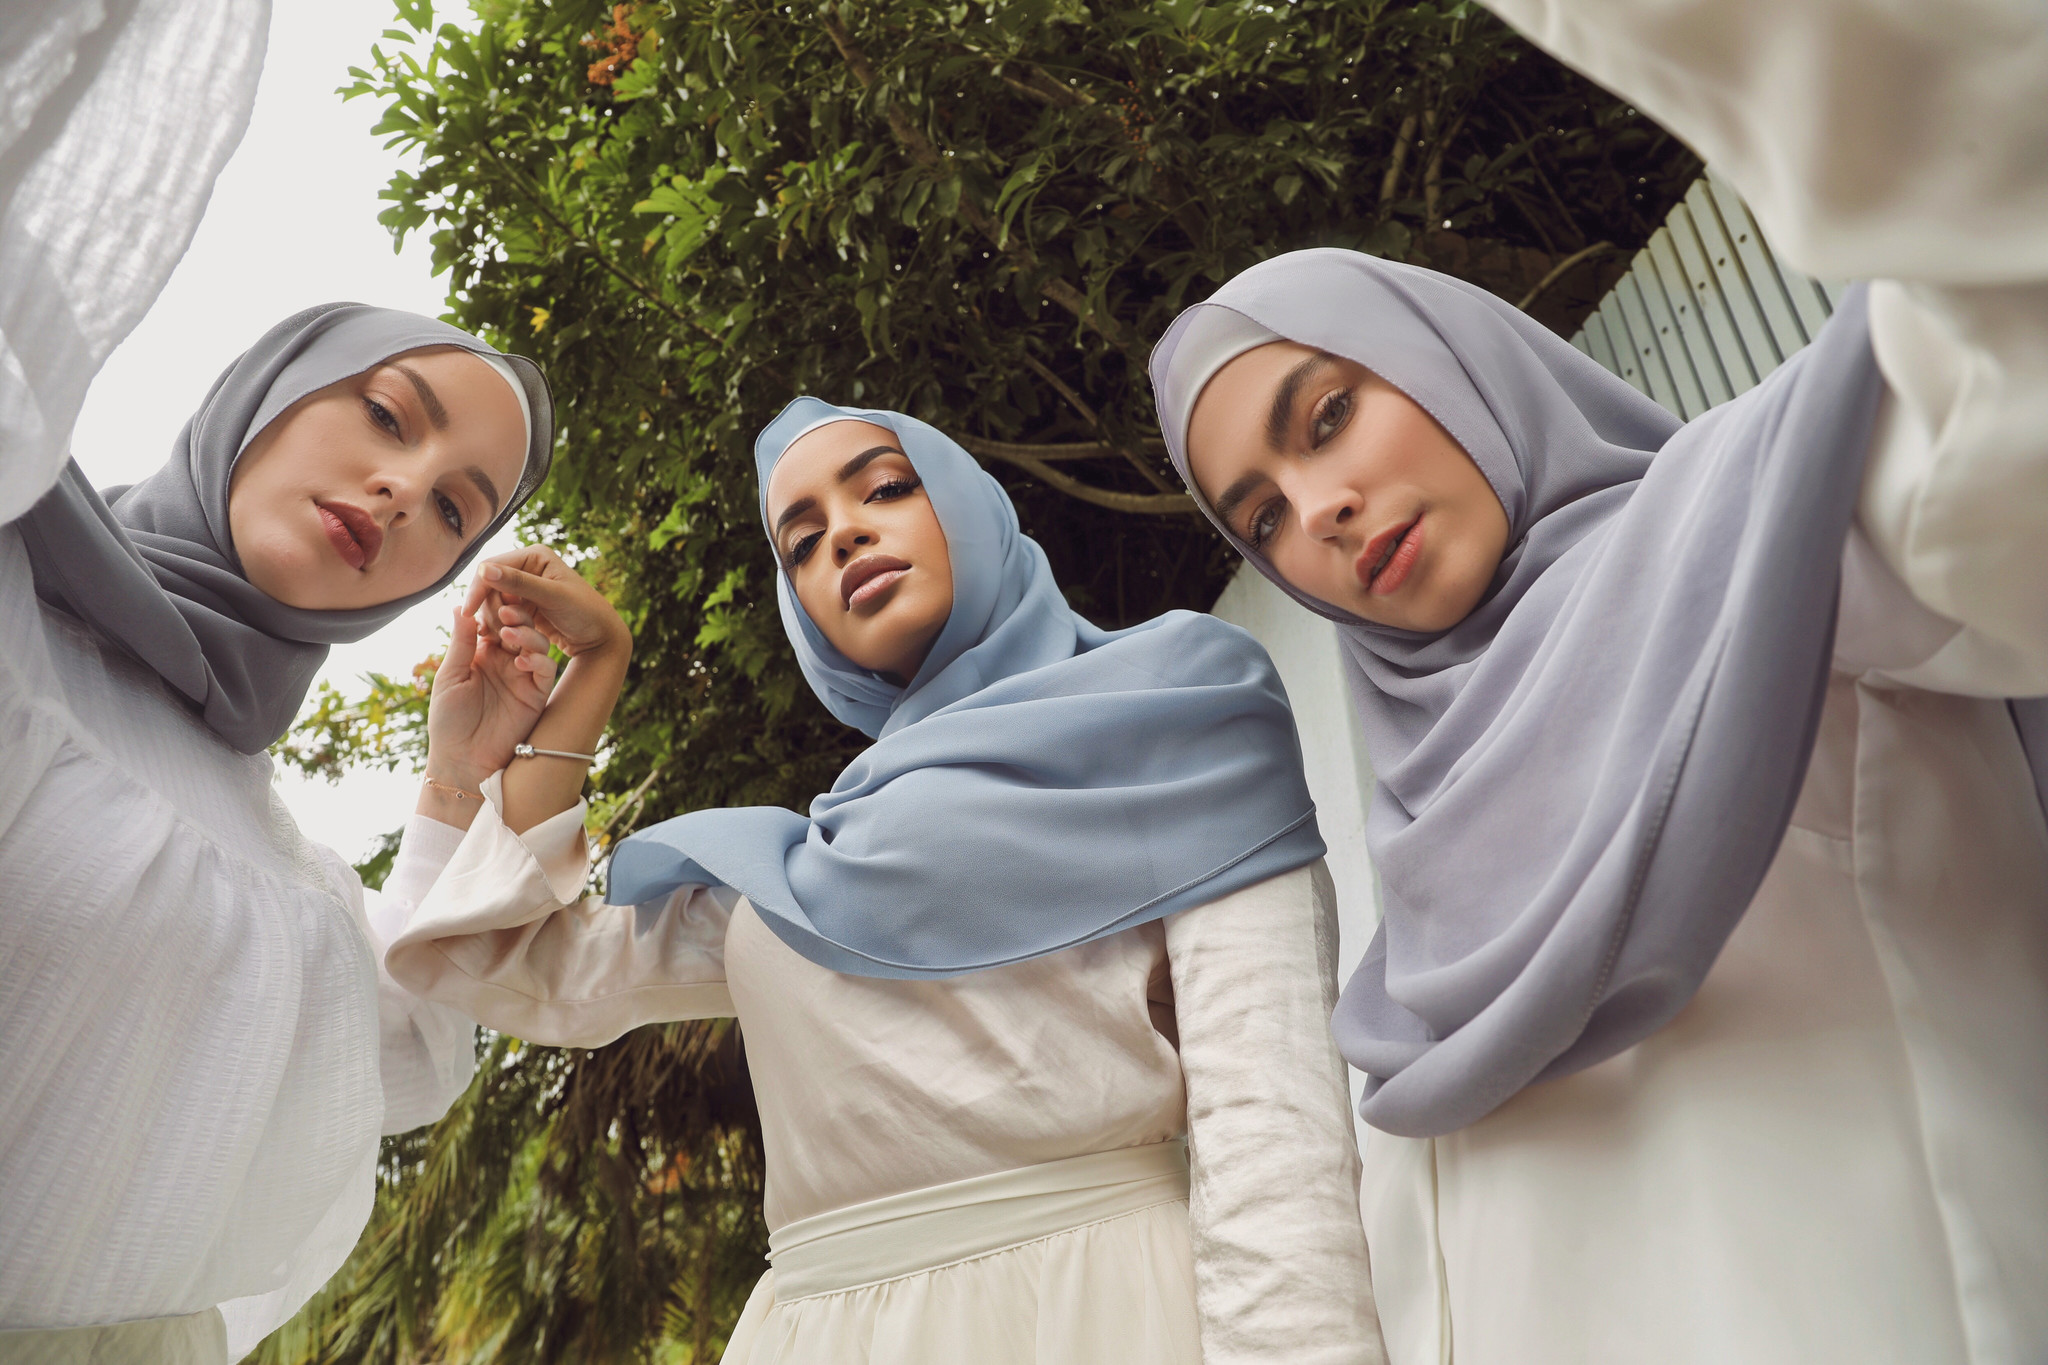 Picture of 3 women in Nasiba Fashions hijabs